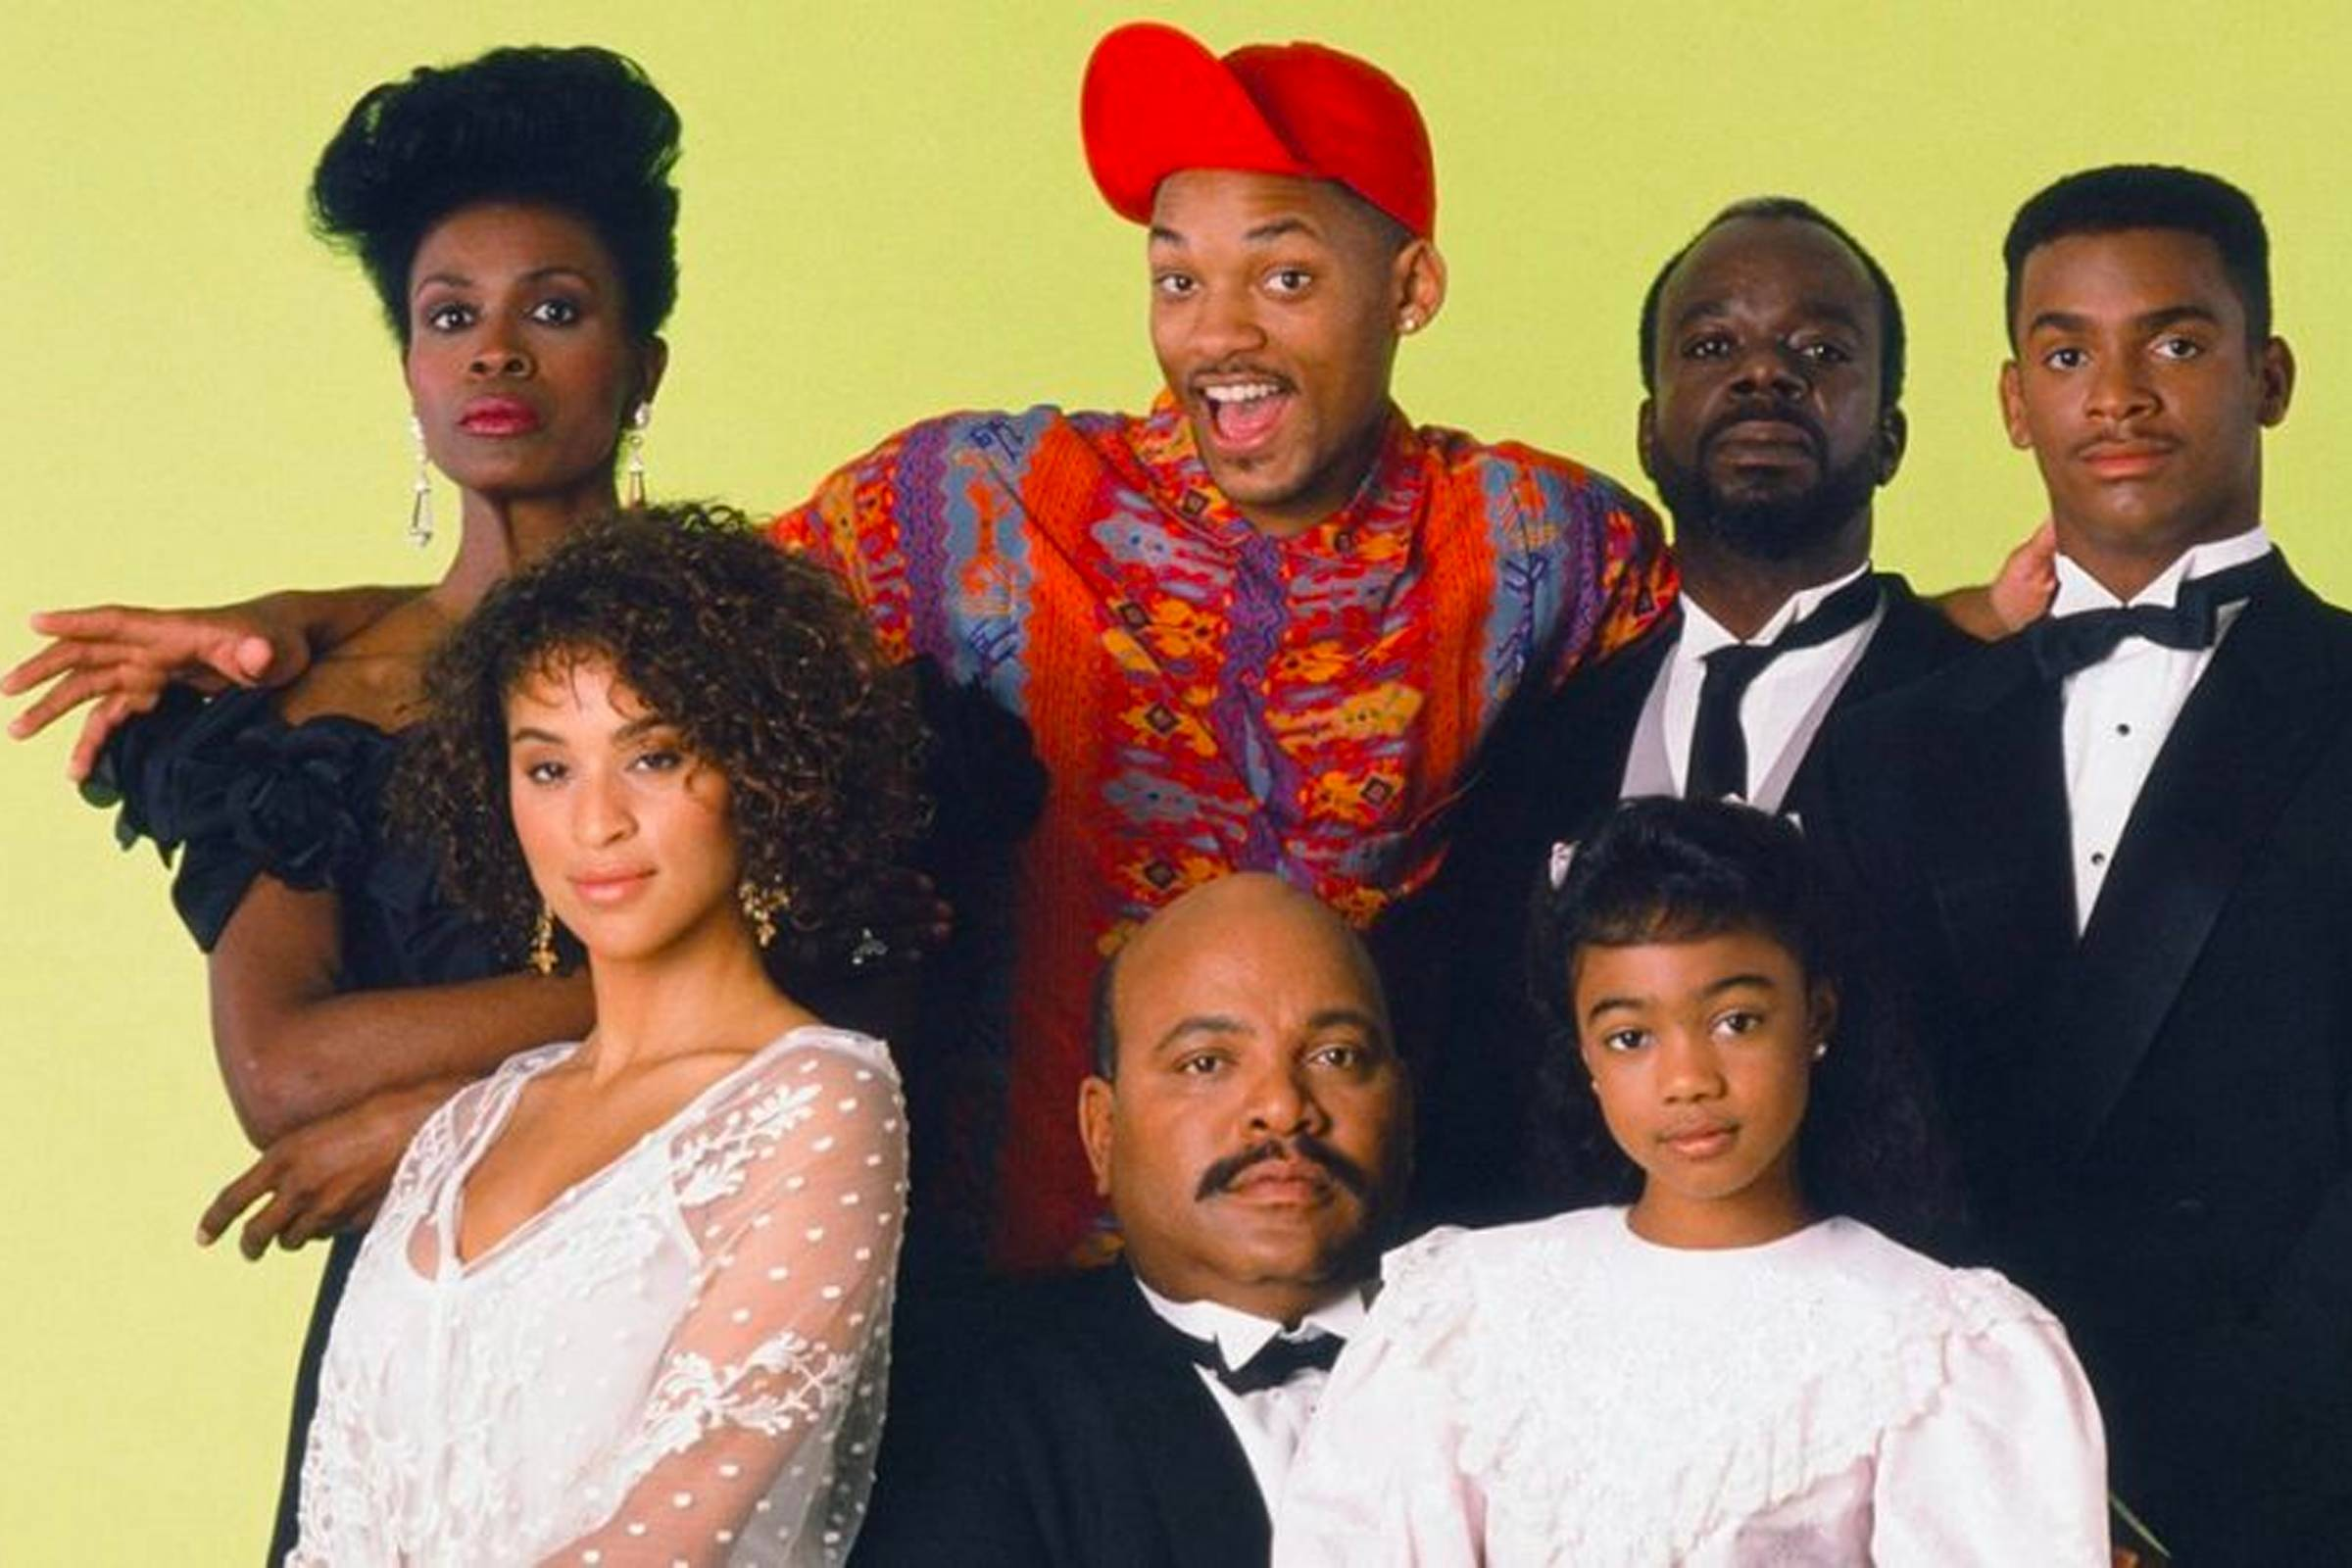 """7 Trends From """"The Fresh Prince of Bel-Air"""" We Still See Today"""